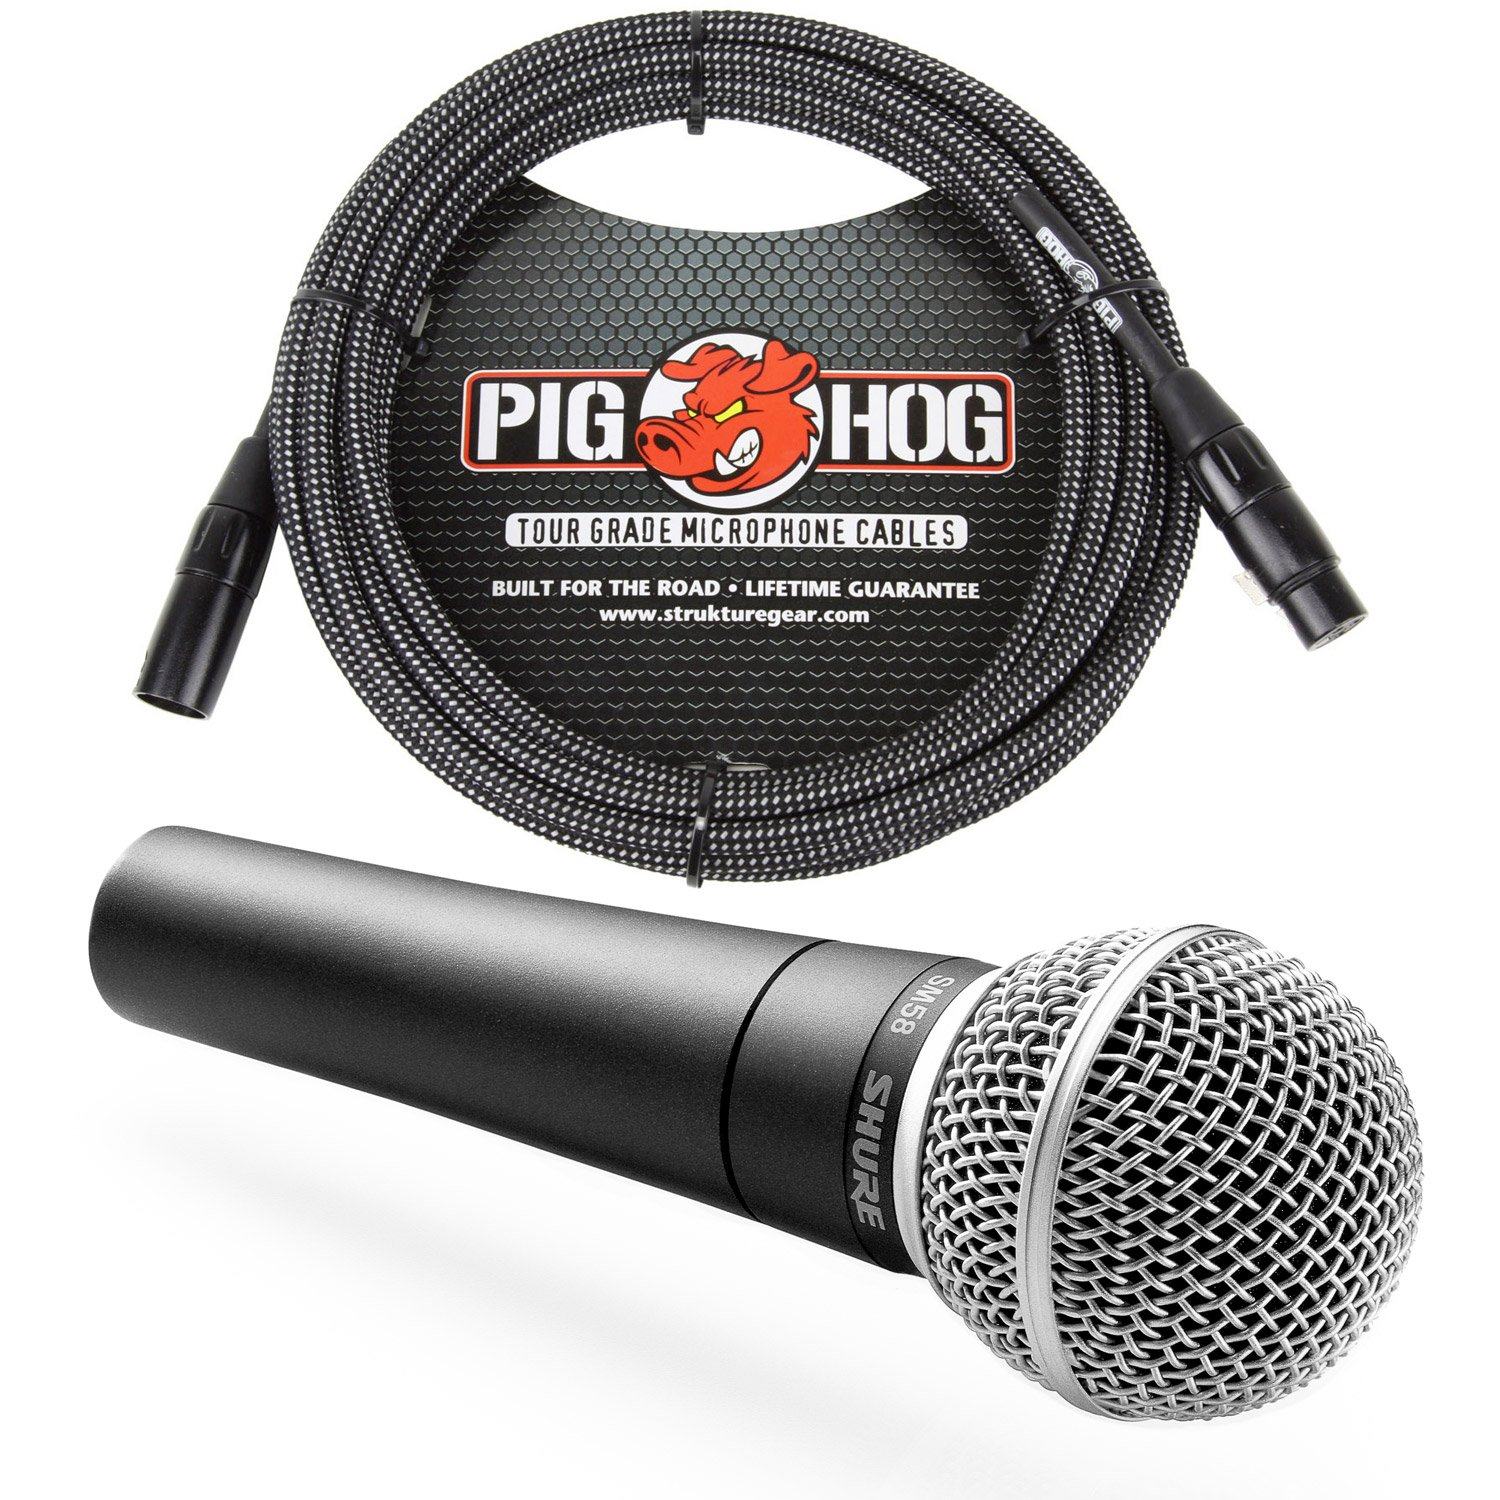 Shure SM58 Cardioid Vocal Microphone & Pig Hog Black & White Woven Mic Cable, 20ft XLR - Bundle